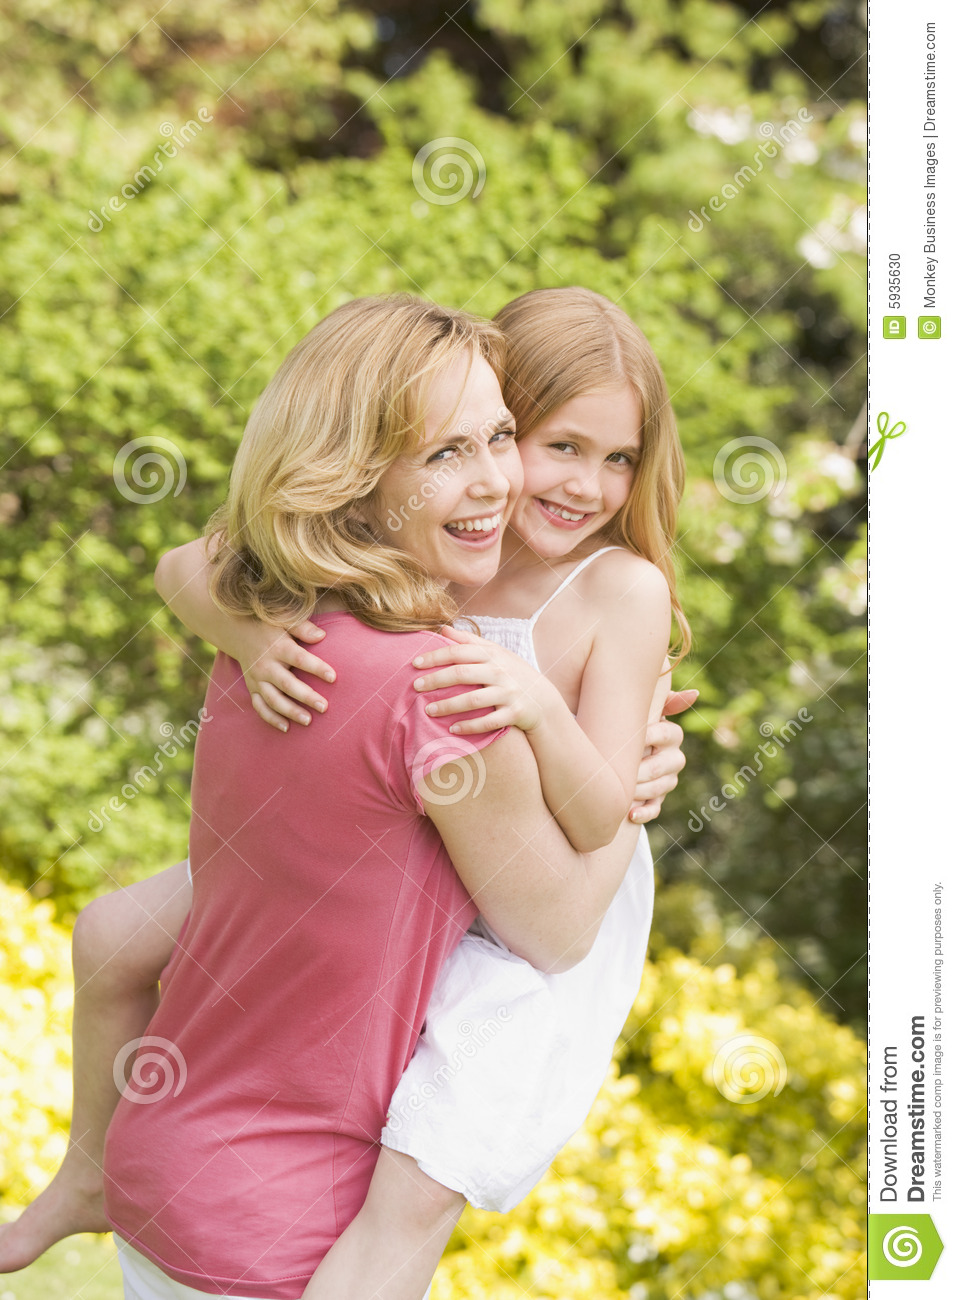 mother carrying daughter outdoors smiling stock photo mom and daughter clipart images mom and daughter cooking clipart